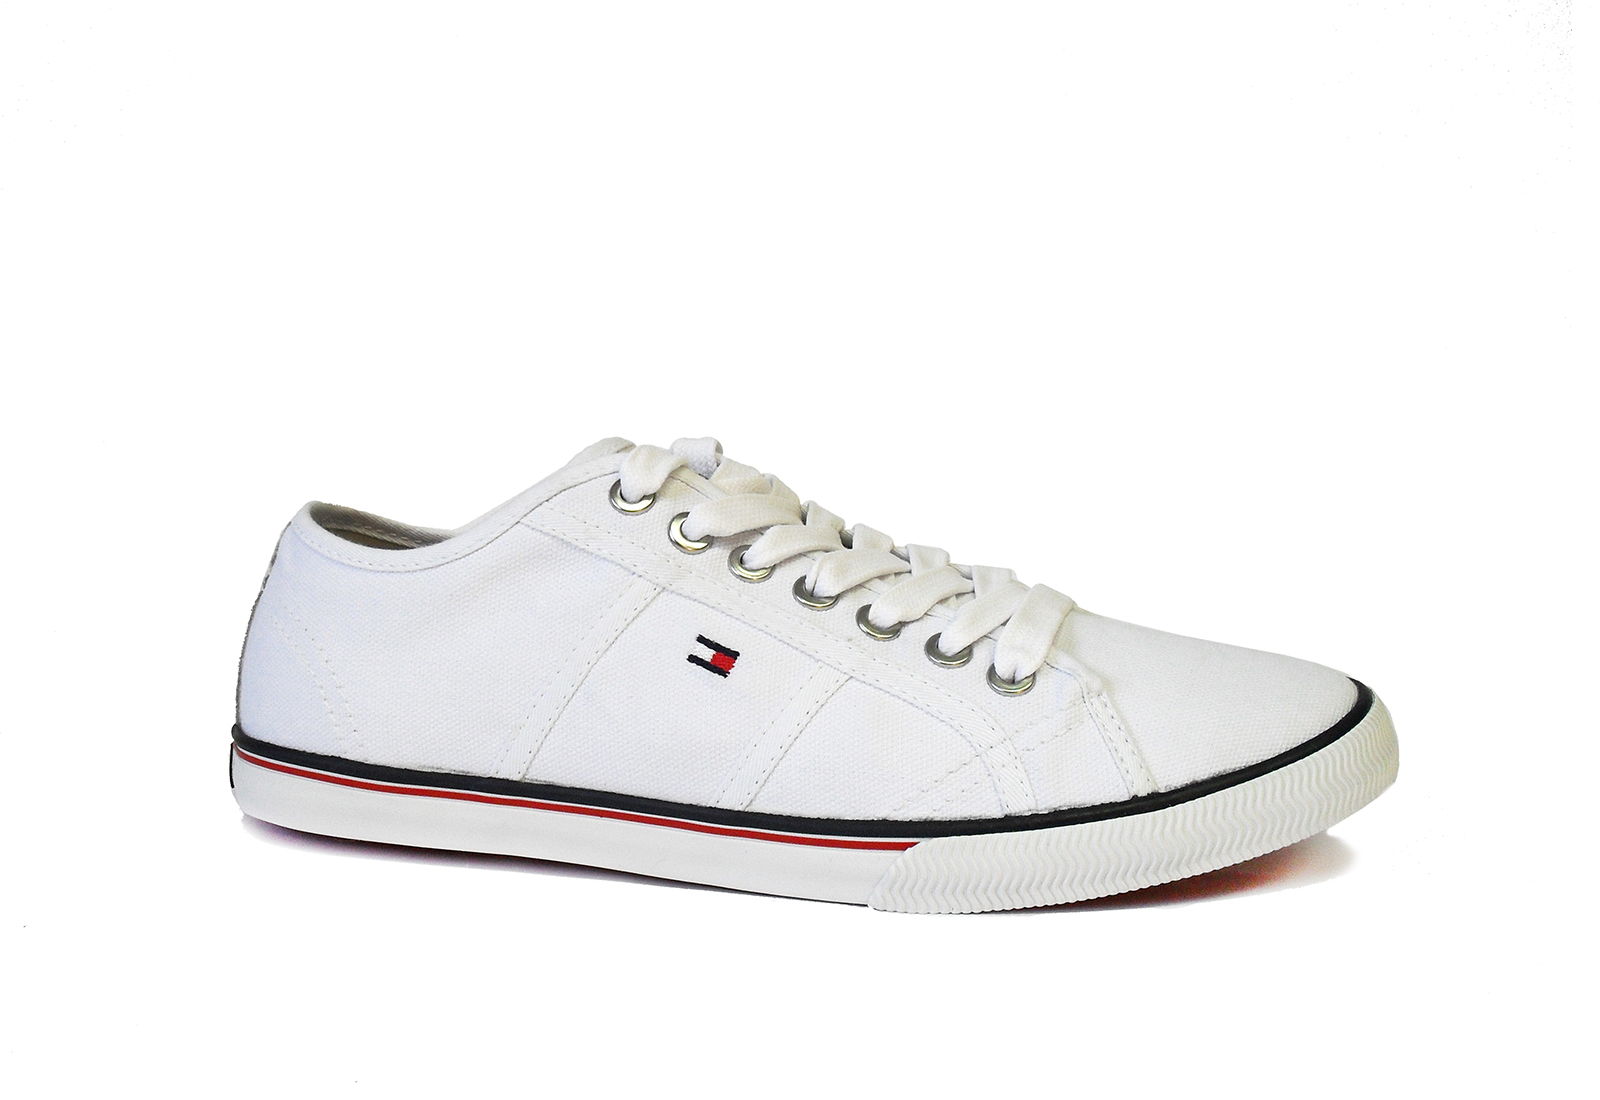 Tommy Hilfiger Tornacipő - Vantage 2a - 13S-5298-100 - Office Shoes ... 2eb5a1196d